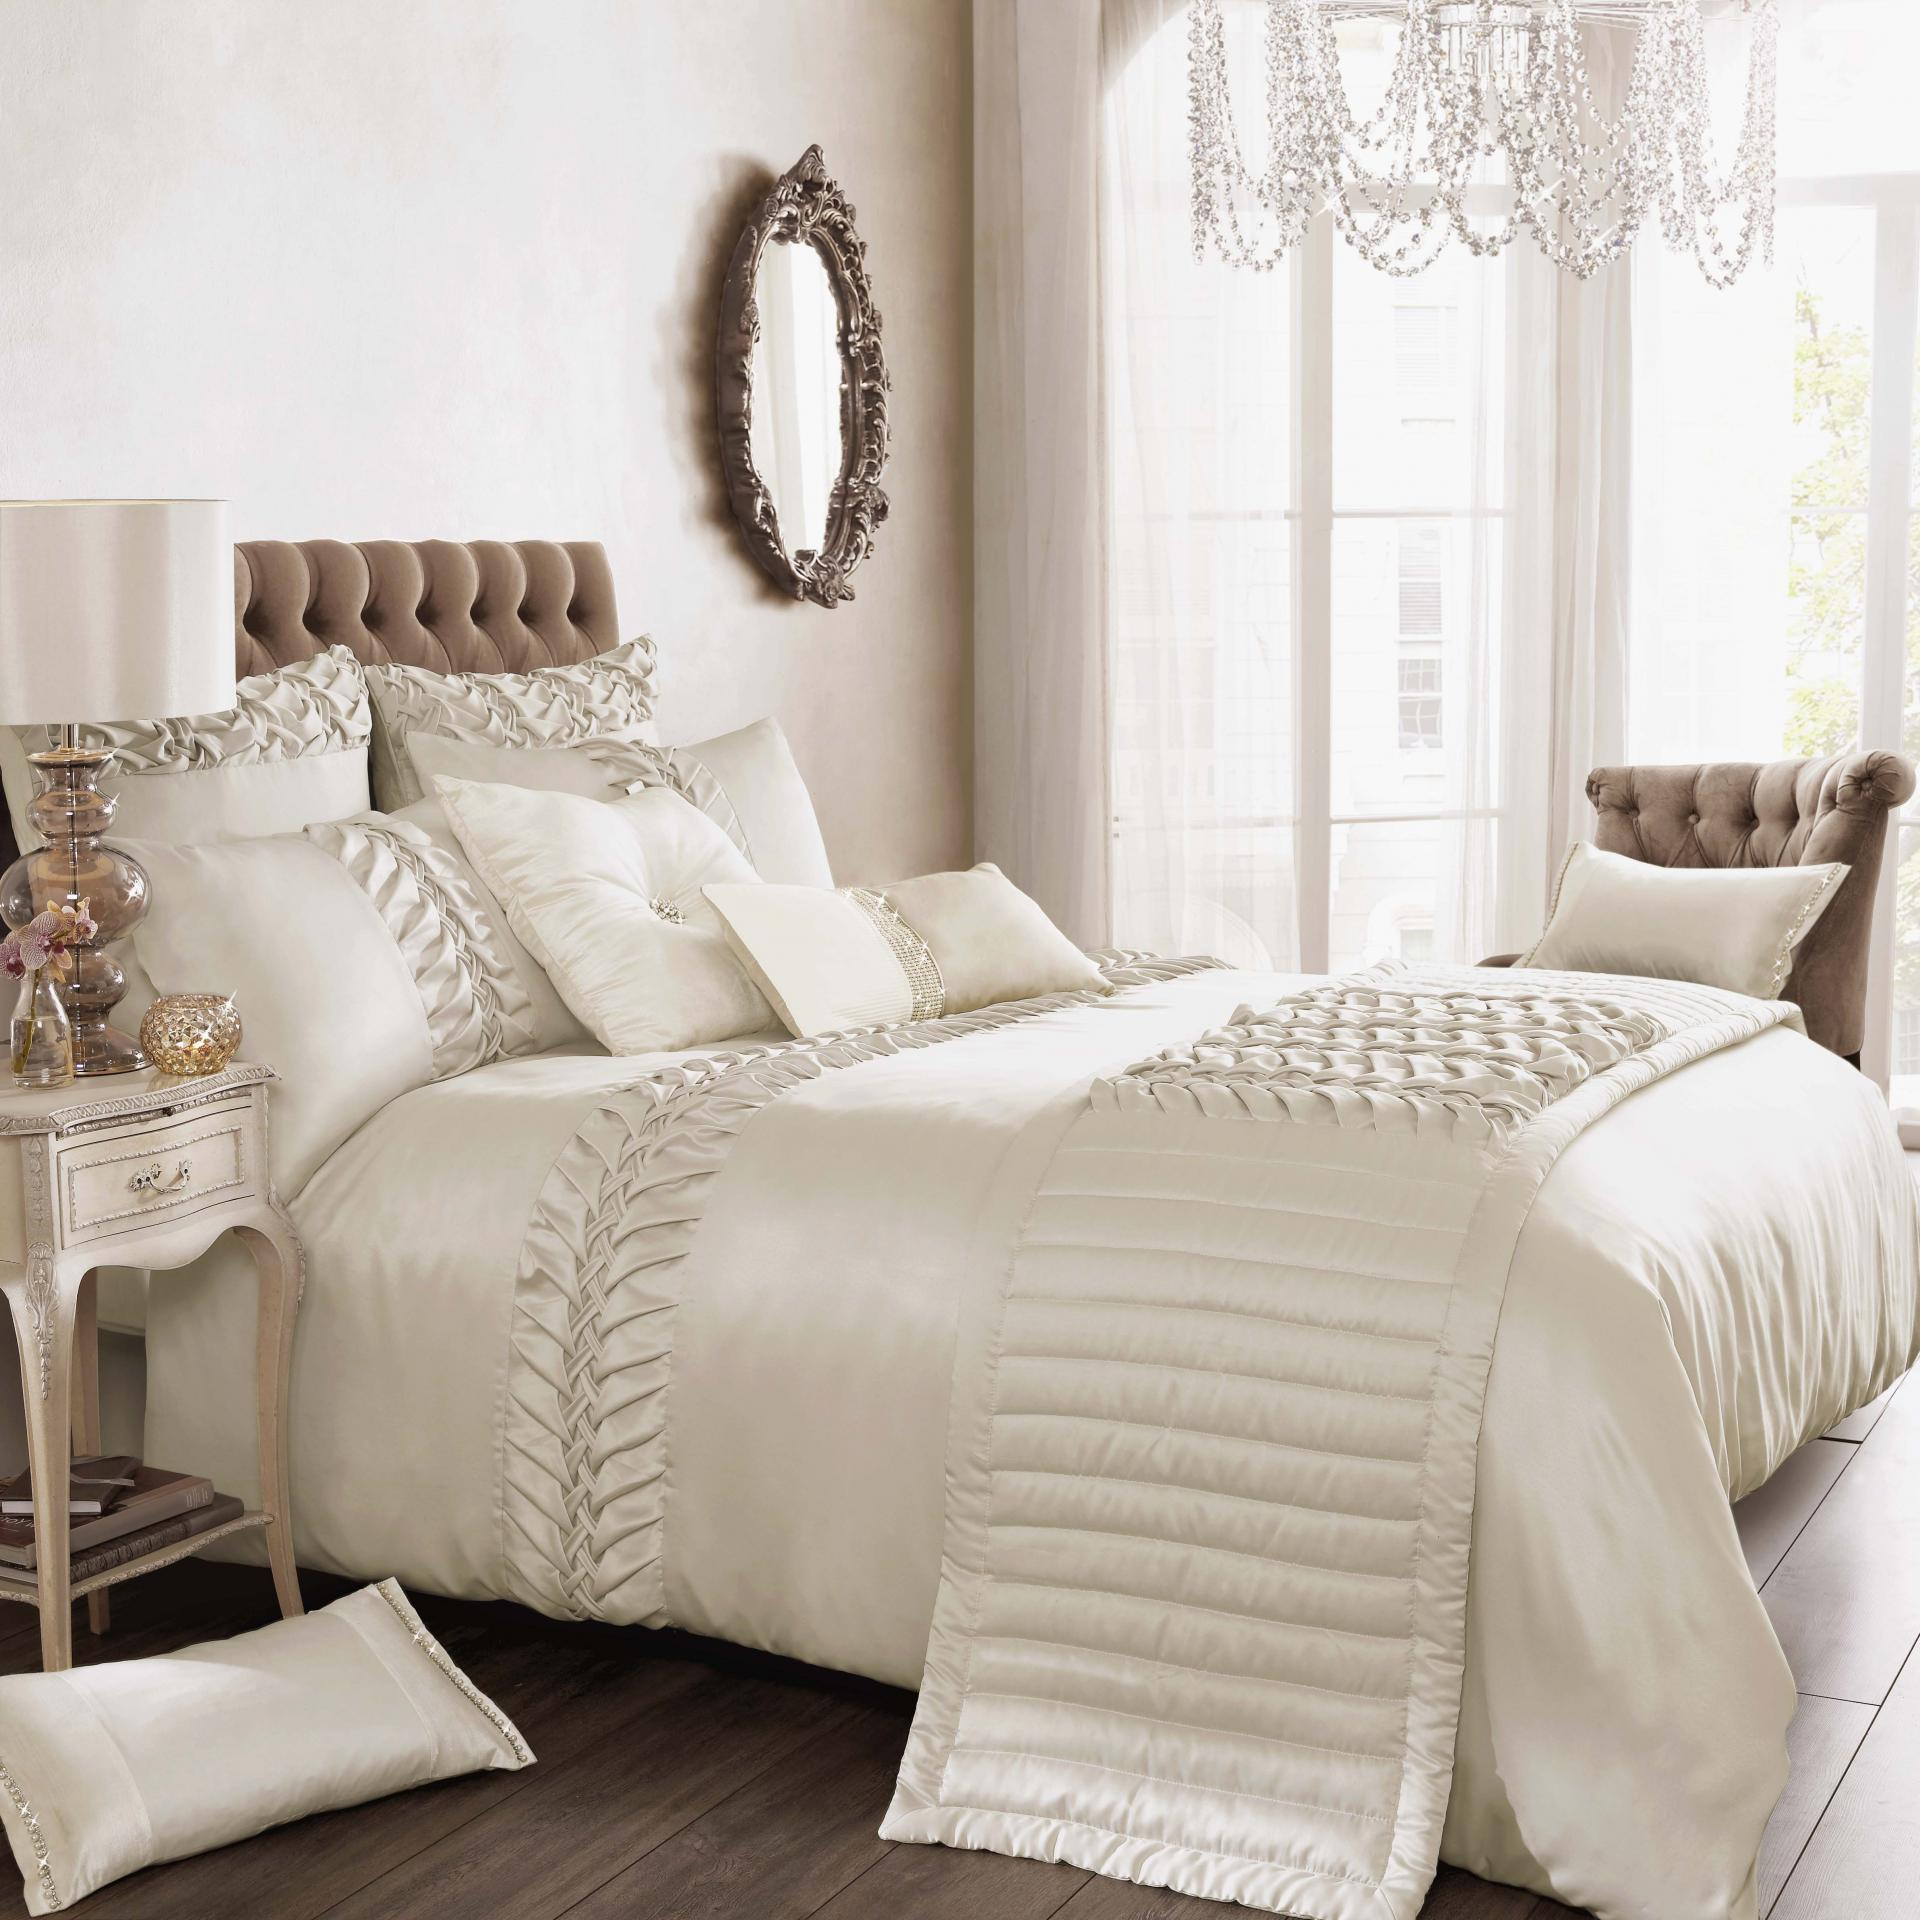 Marvellous comforters sets for bedroom design with queen comforter sets